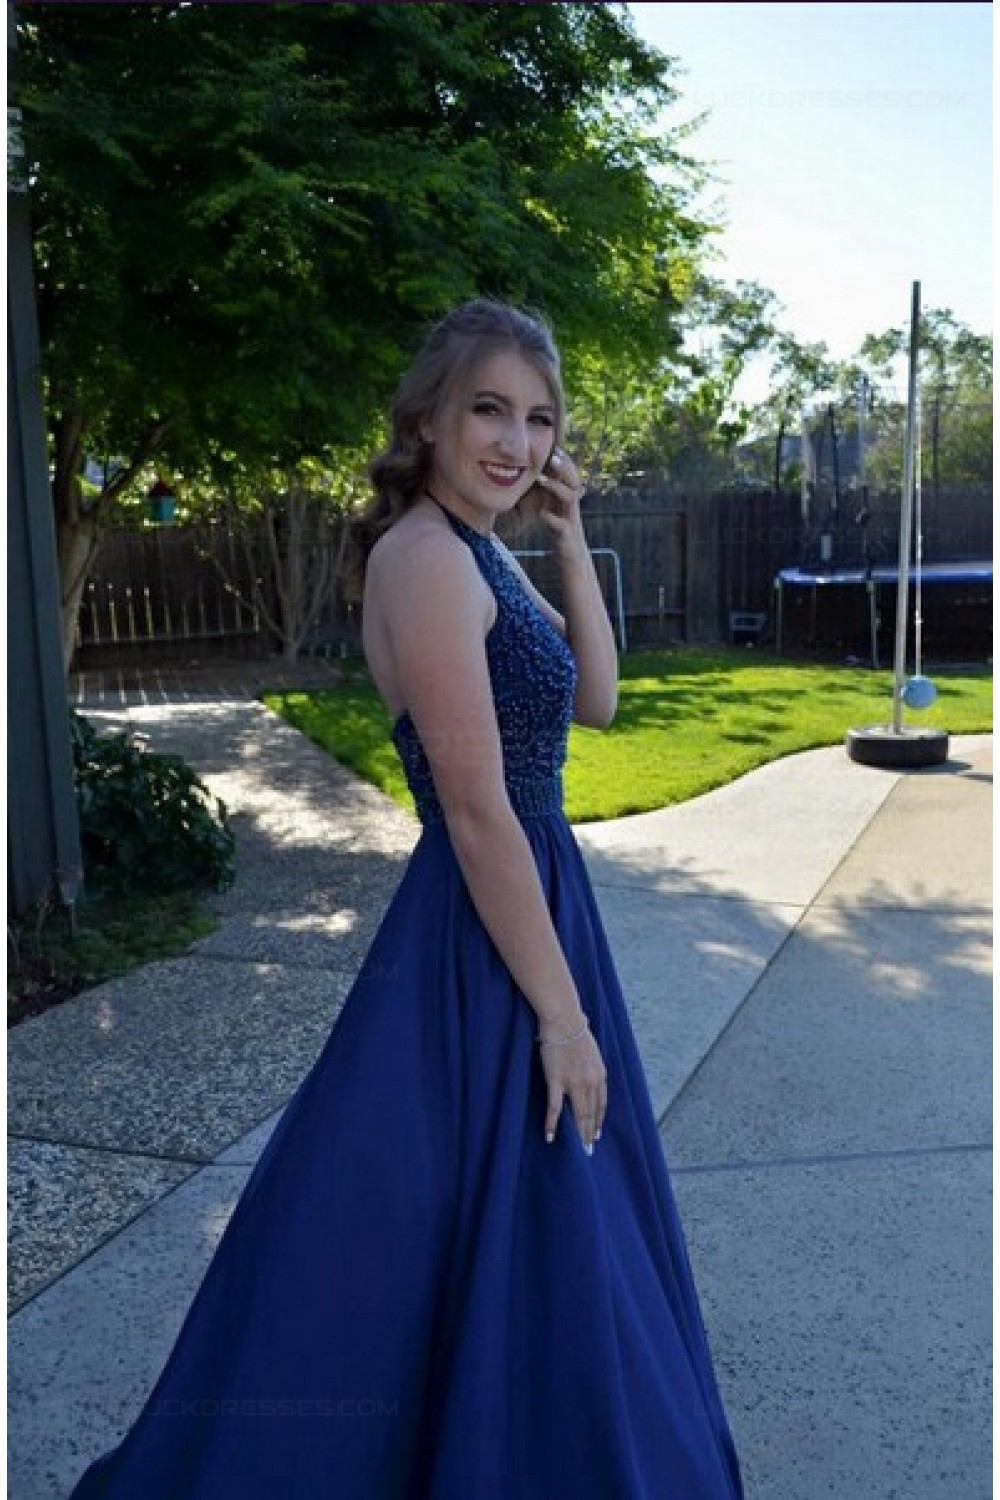 A-Line Beaded Halter Long Blue Prom Dresses Party Evening Gowns 3020507